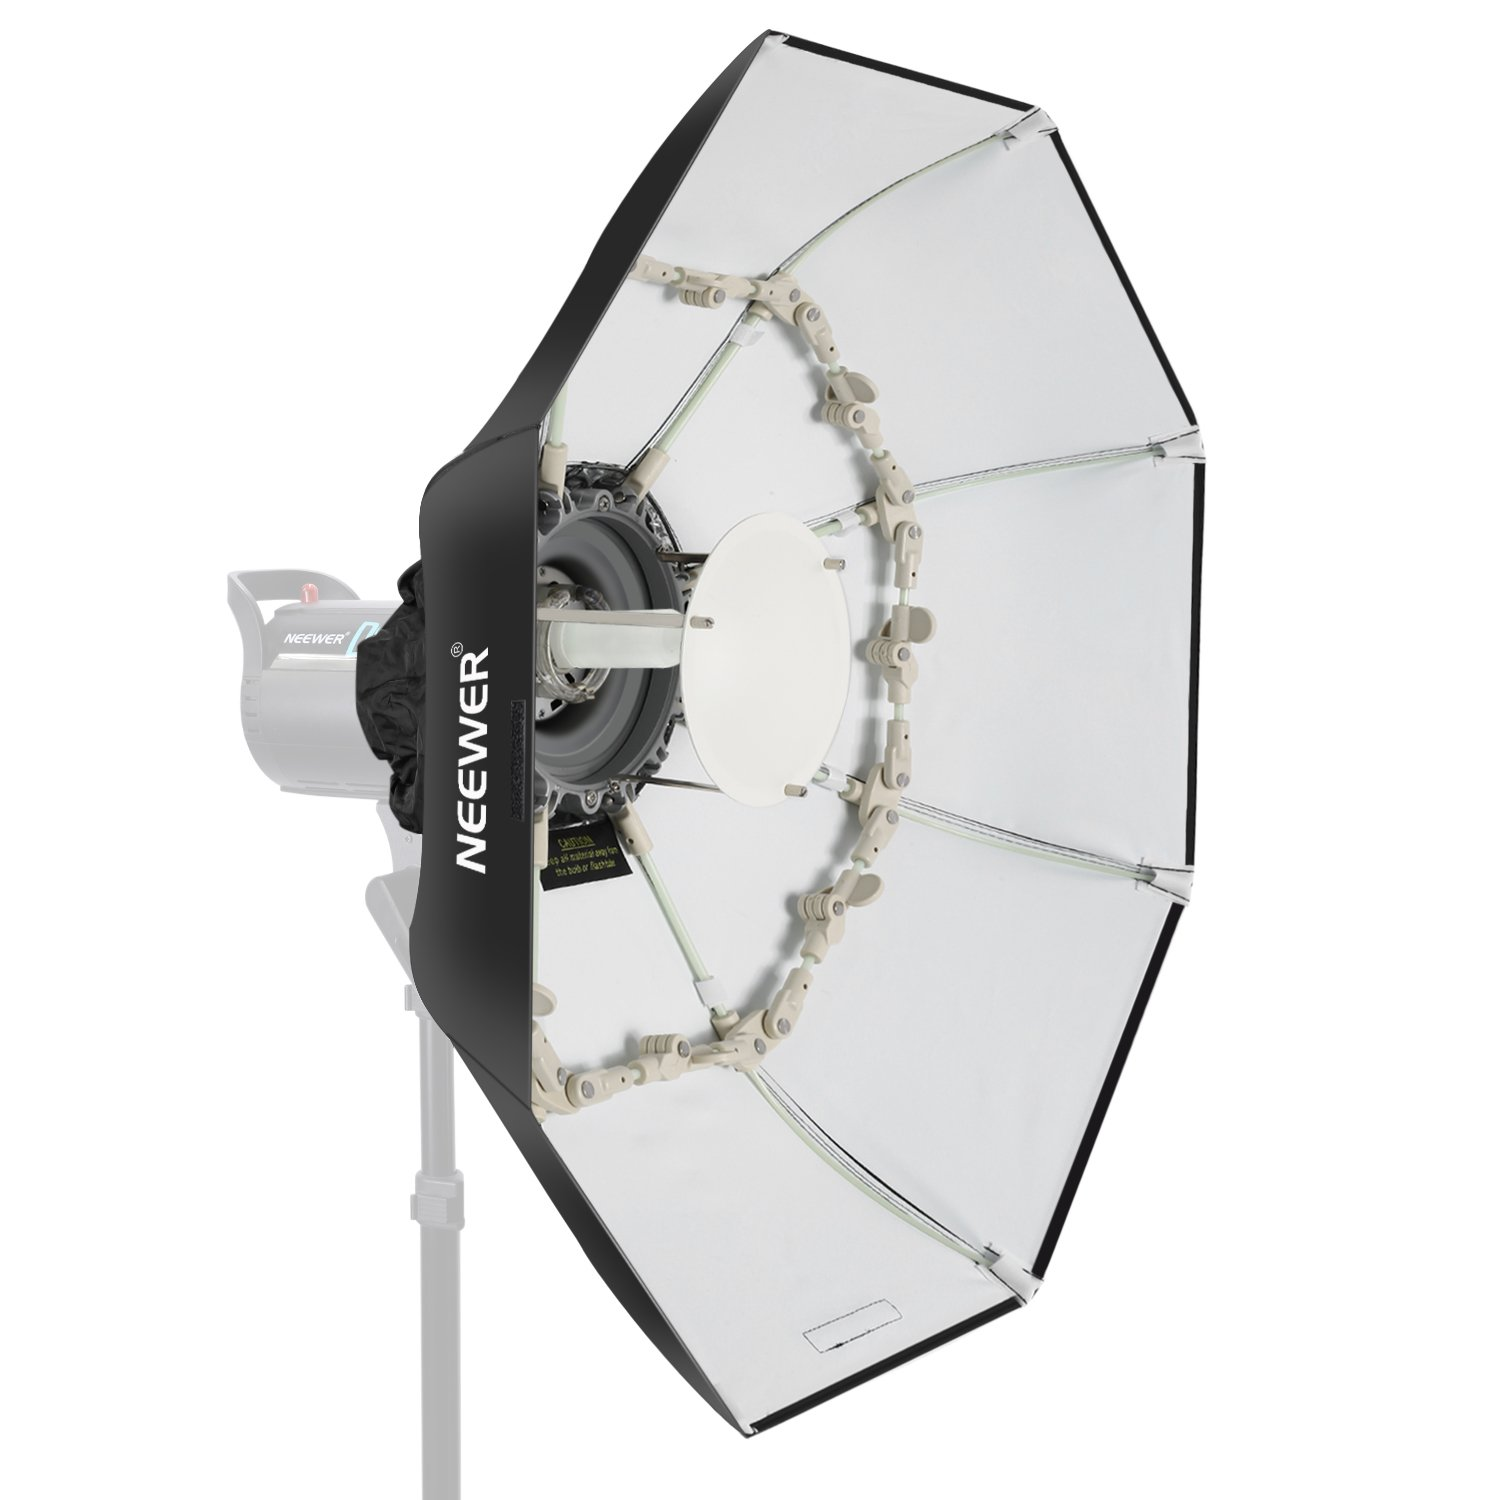 Neewer 27.5 inches/70 centimeters Folding Beauty Dish Octagonal with Center Deflector Disc, Removable Front Diffuser and Bowens Speed Ring for Monolight Studio Flash in Portrait and Event Photography 10091599